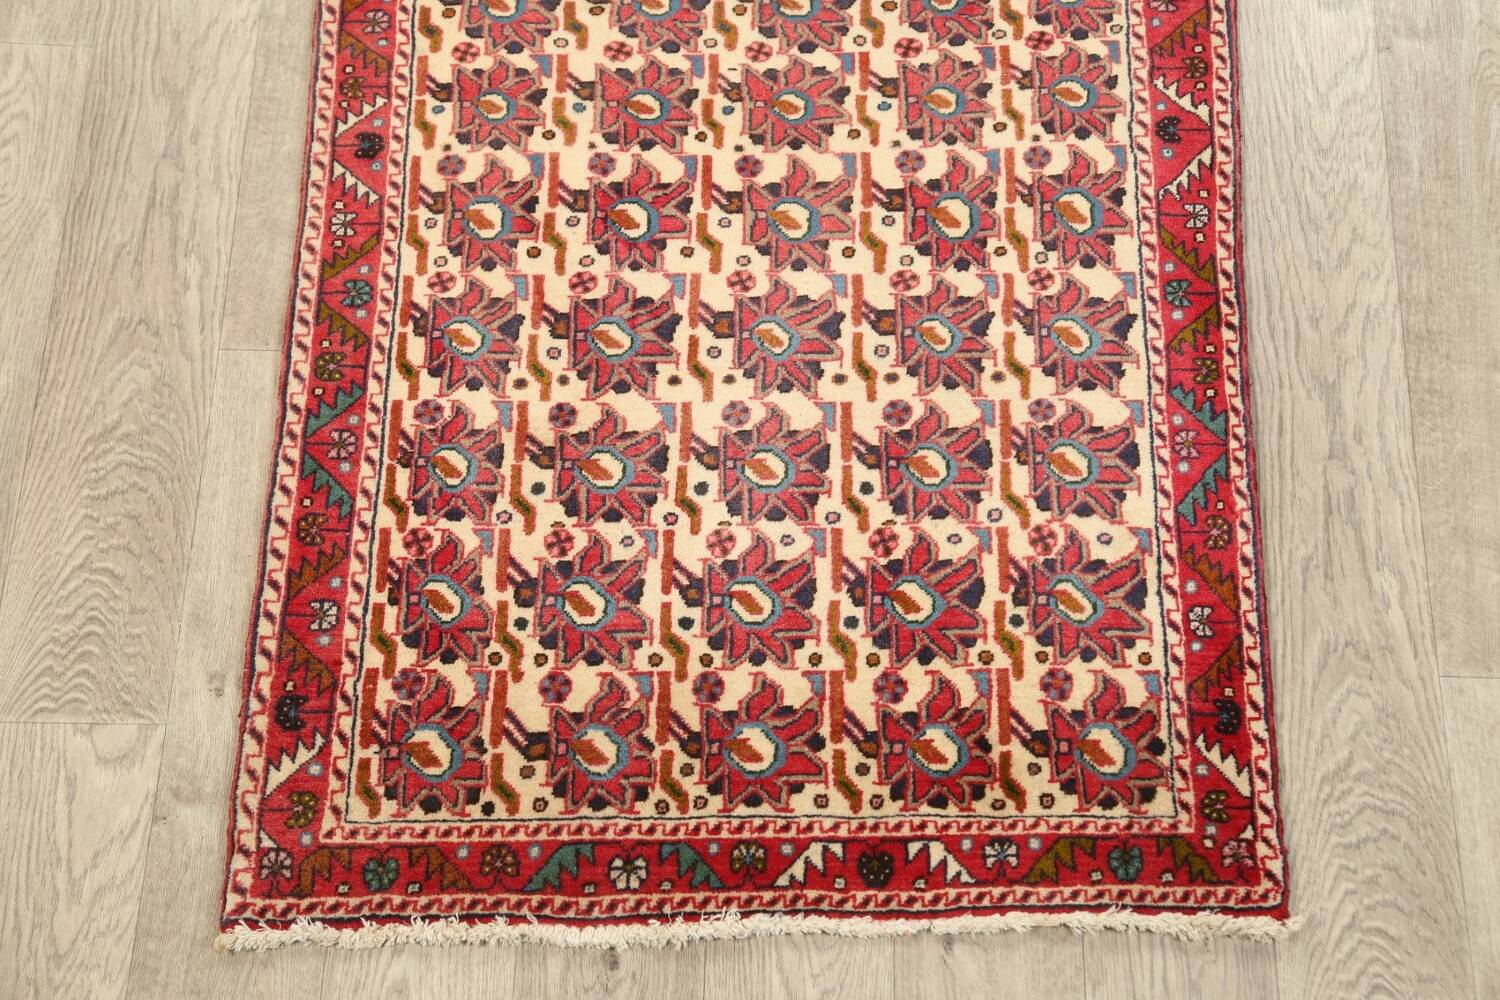 All-Over Geometric Afshar Persian Runner Rug 3x7 image 8